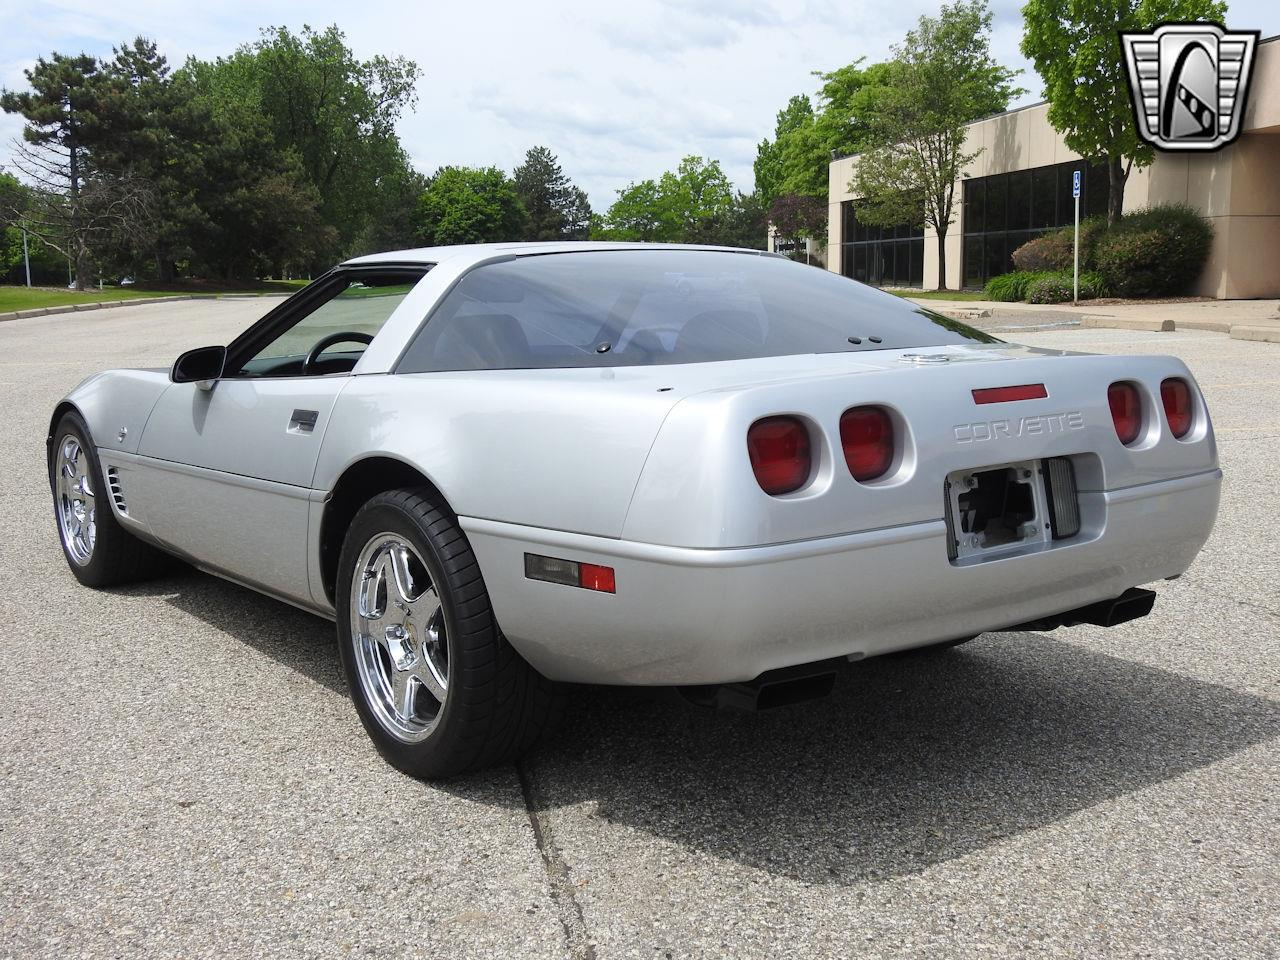 1996 Chevrolet Corvette (CC-1346005) for sale in O'Fallon, Illinois